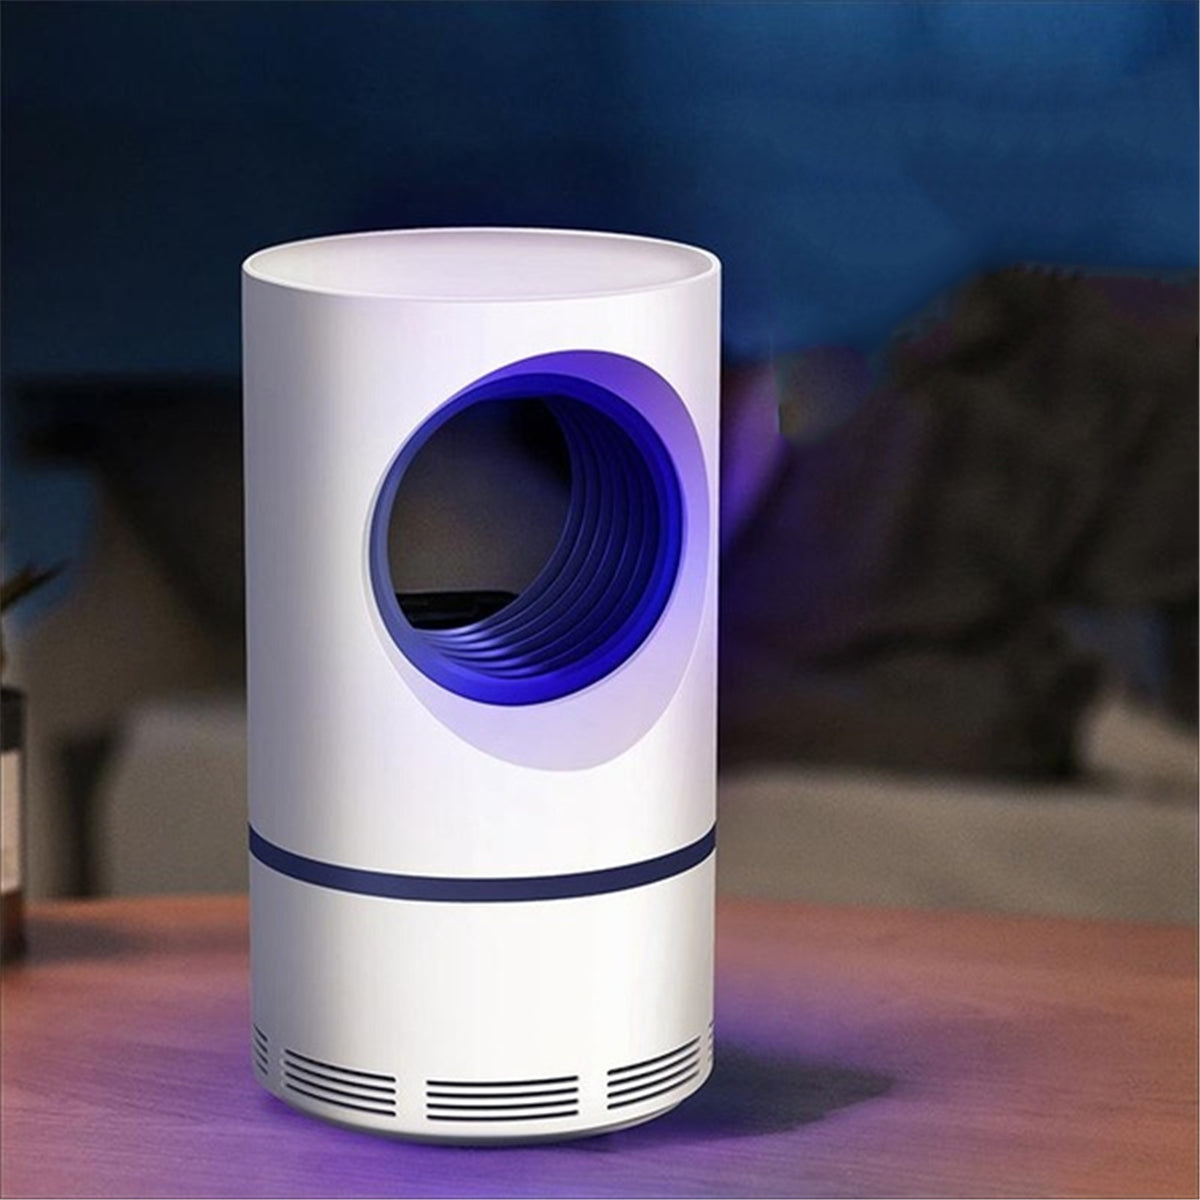 cozyrex,USB Electric Anti Fly Mosquito Insect Killer Lamp UV Light,CozyRex,